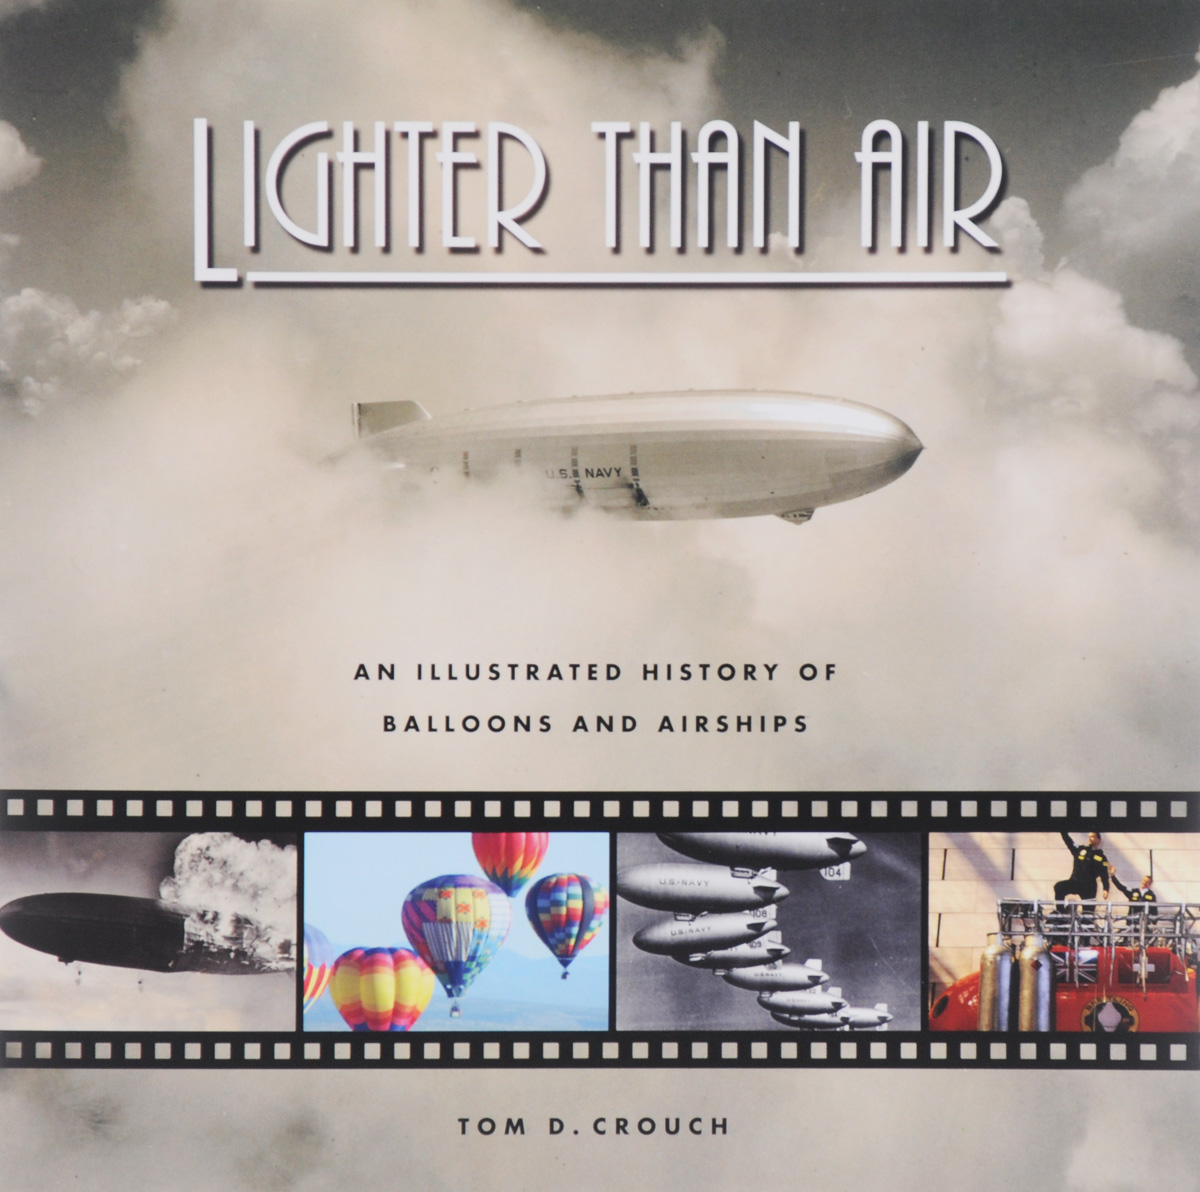 Lighter Than Air: An Illustrated History of Balloons and Airships smithsonian national air and spase museum набор из 100 карточек